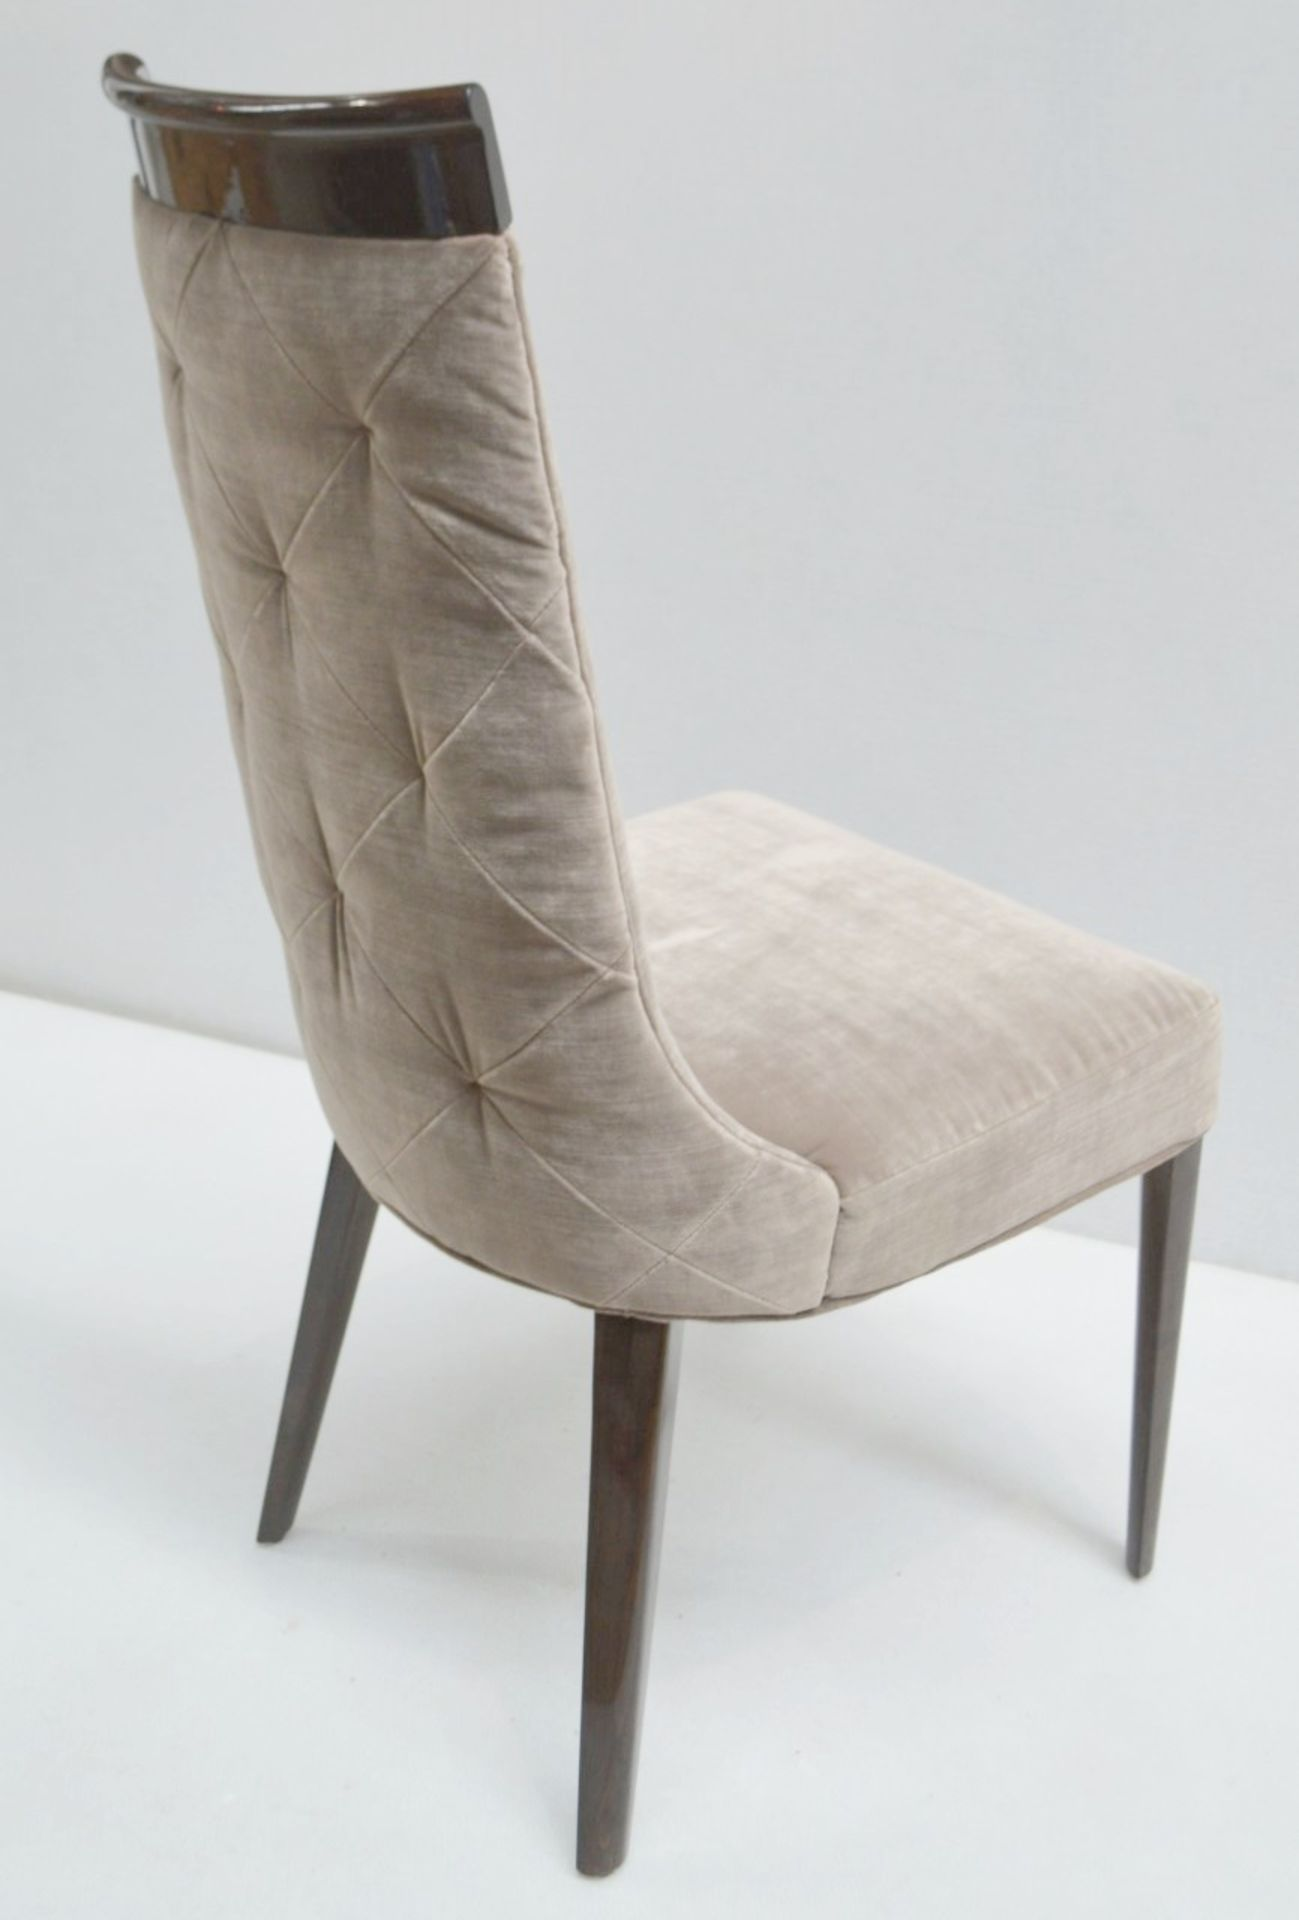 4 x GIORGIO Coliseum Velvet Upholstered Button Back Side Chairs With A Brazilian Rosewood Finish - - Image 6 of 11